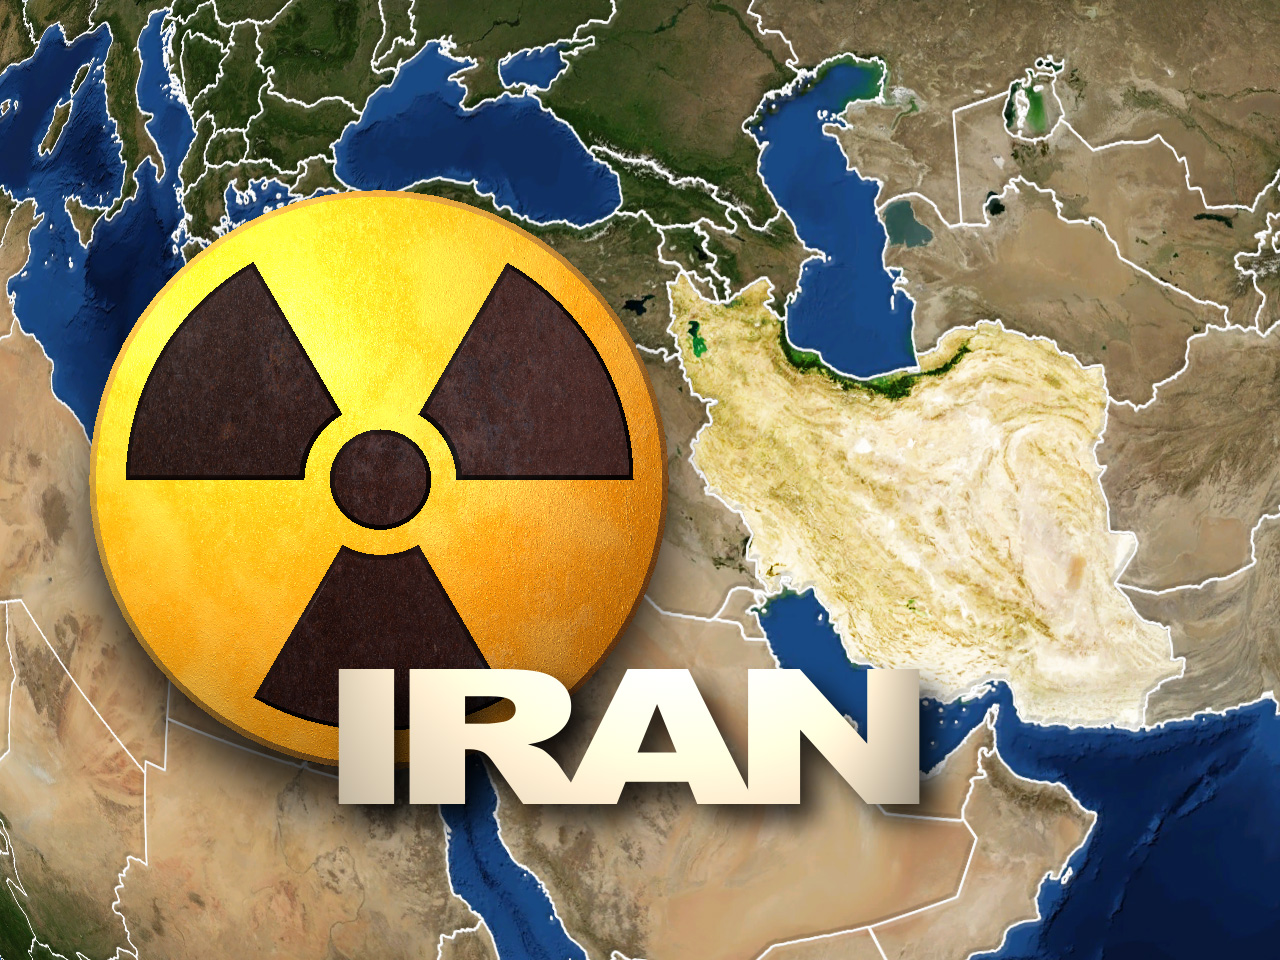 European countries voice concern over Iran nuclear move